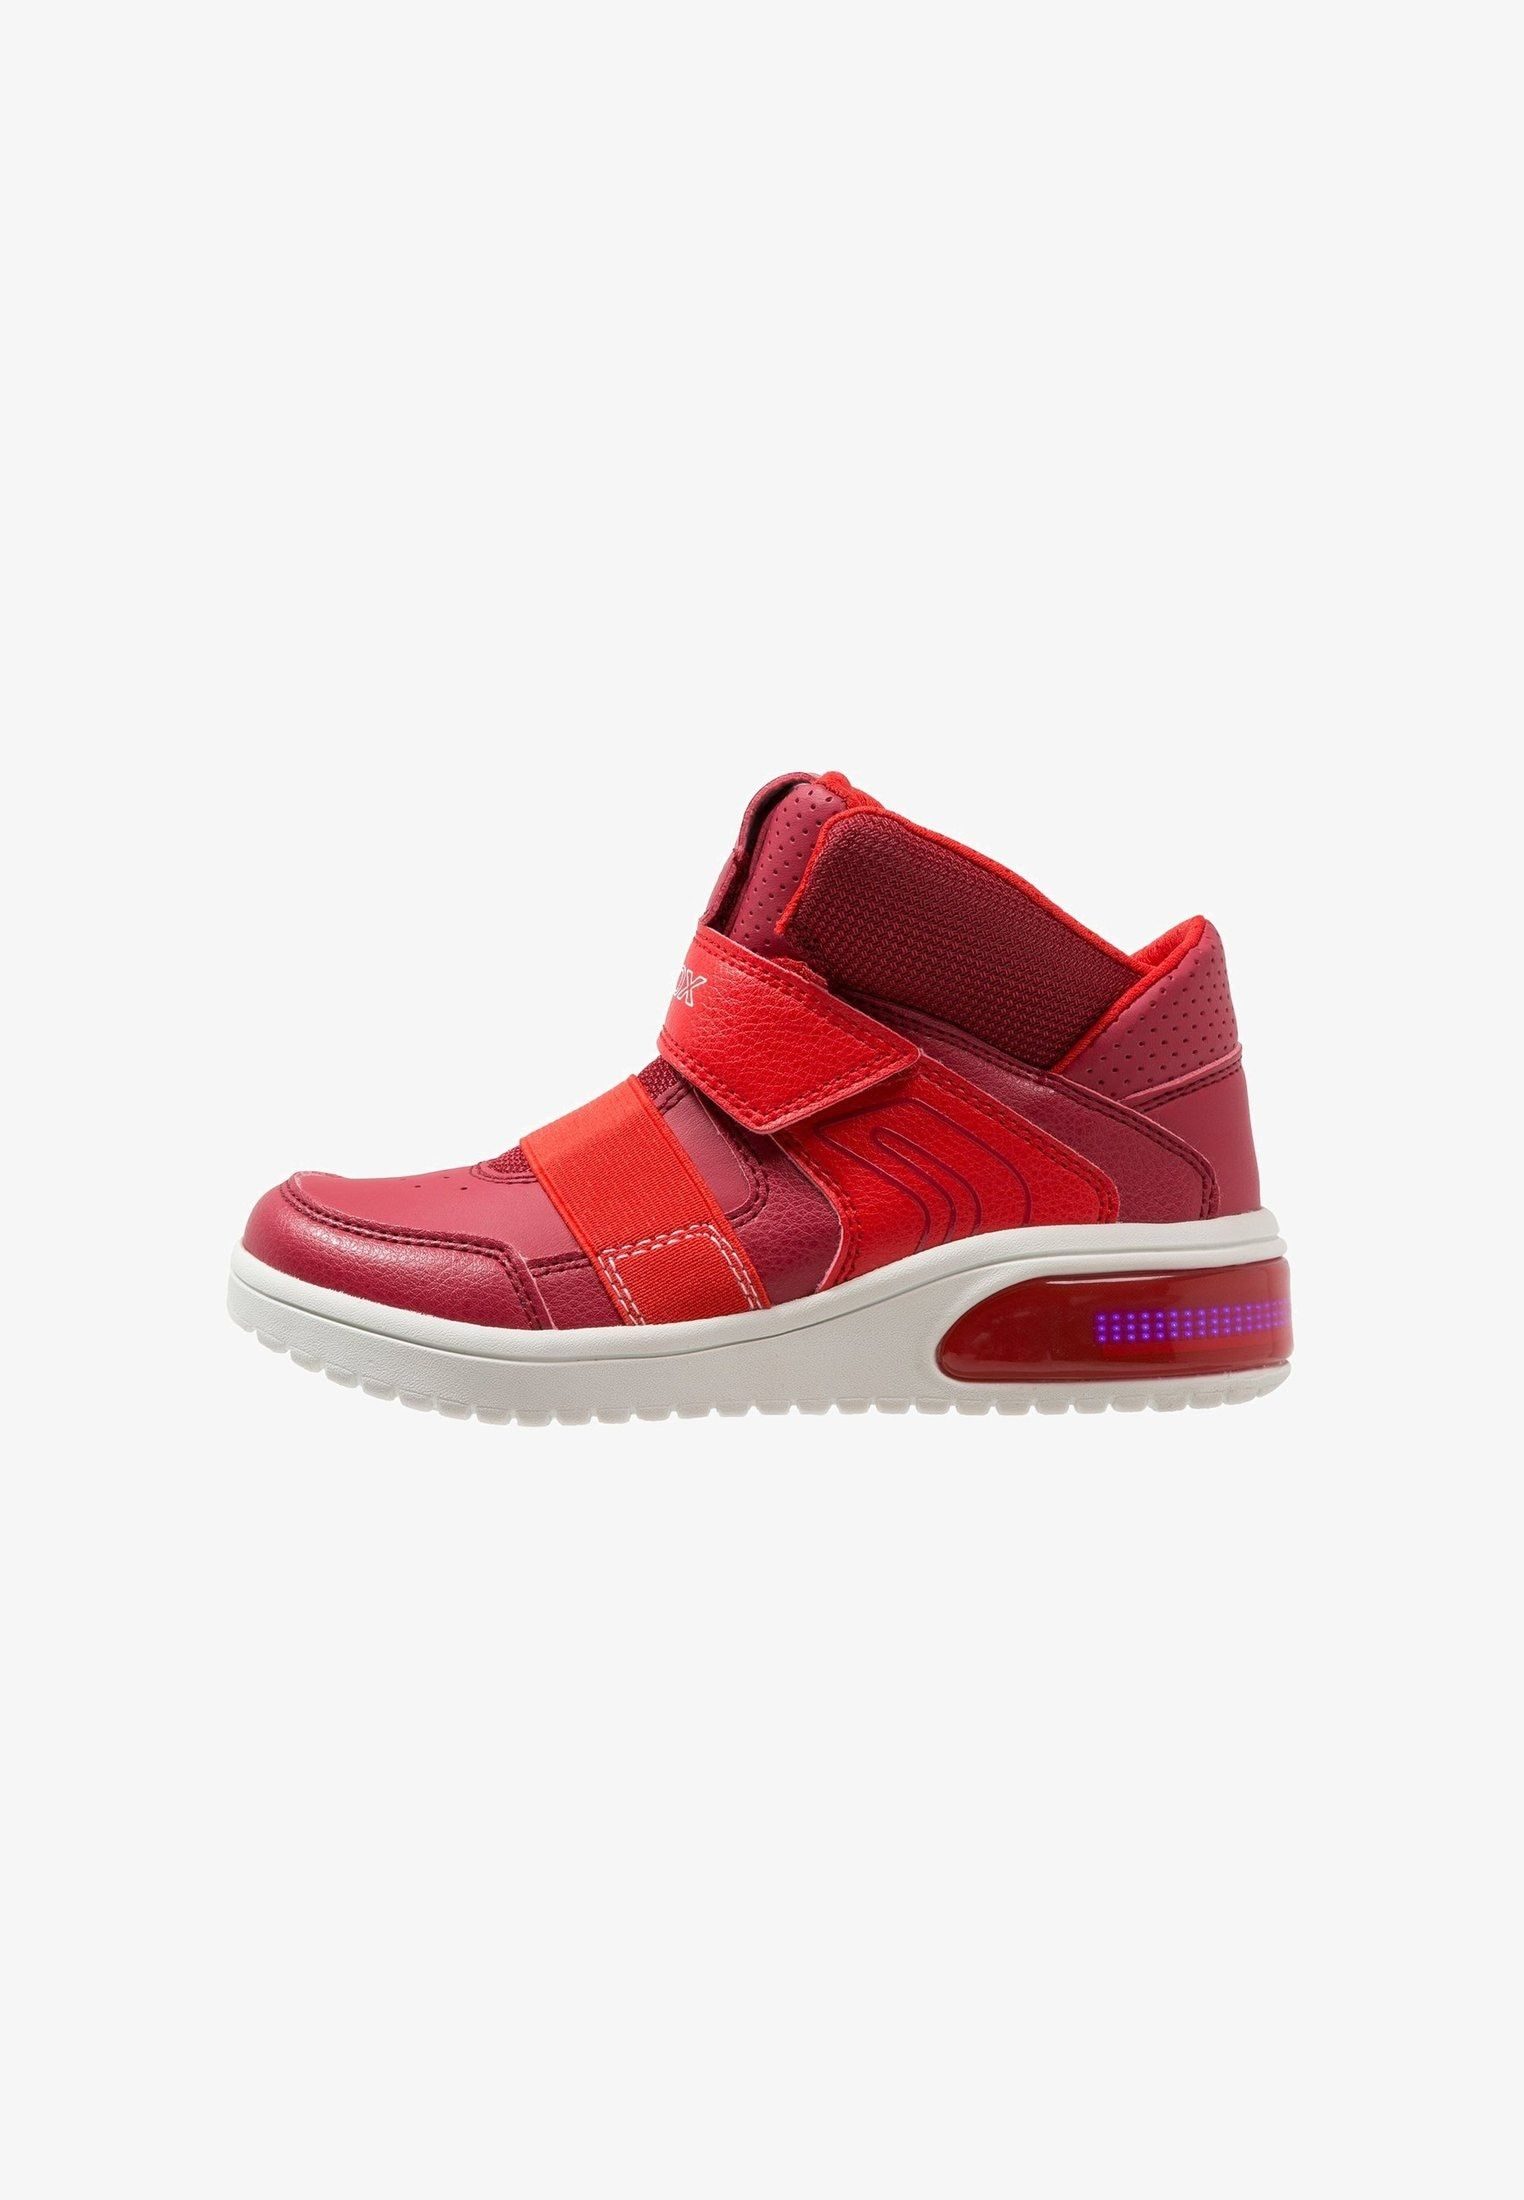 best service 0ba3d 9125a Geox XLED - High-top trainers - red - Zalando.co.uk